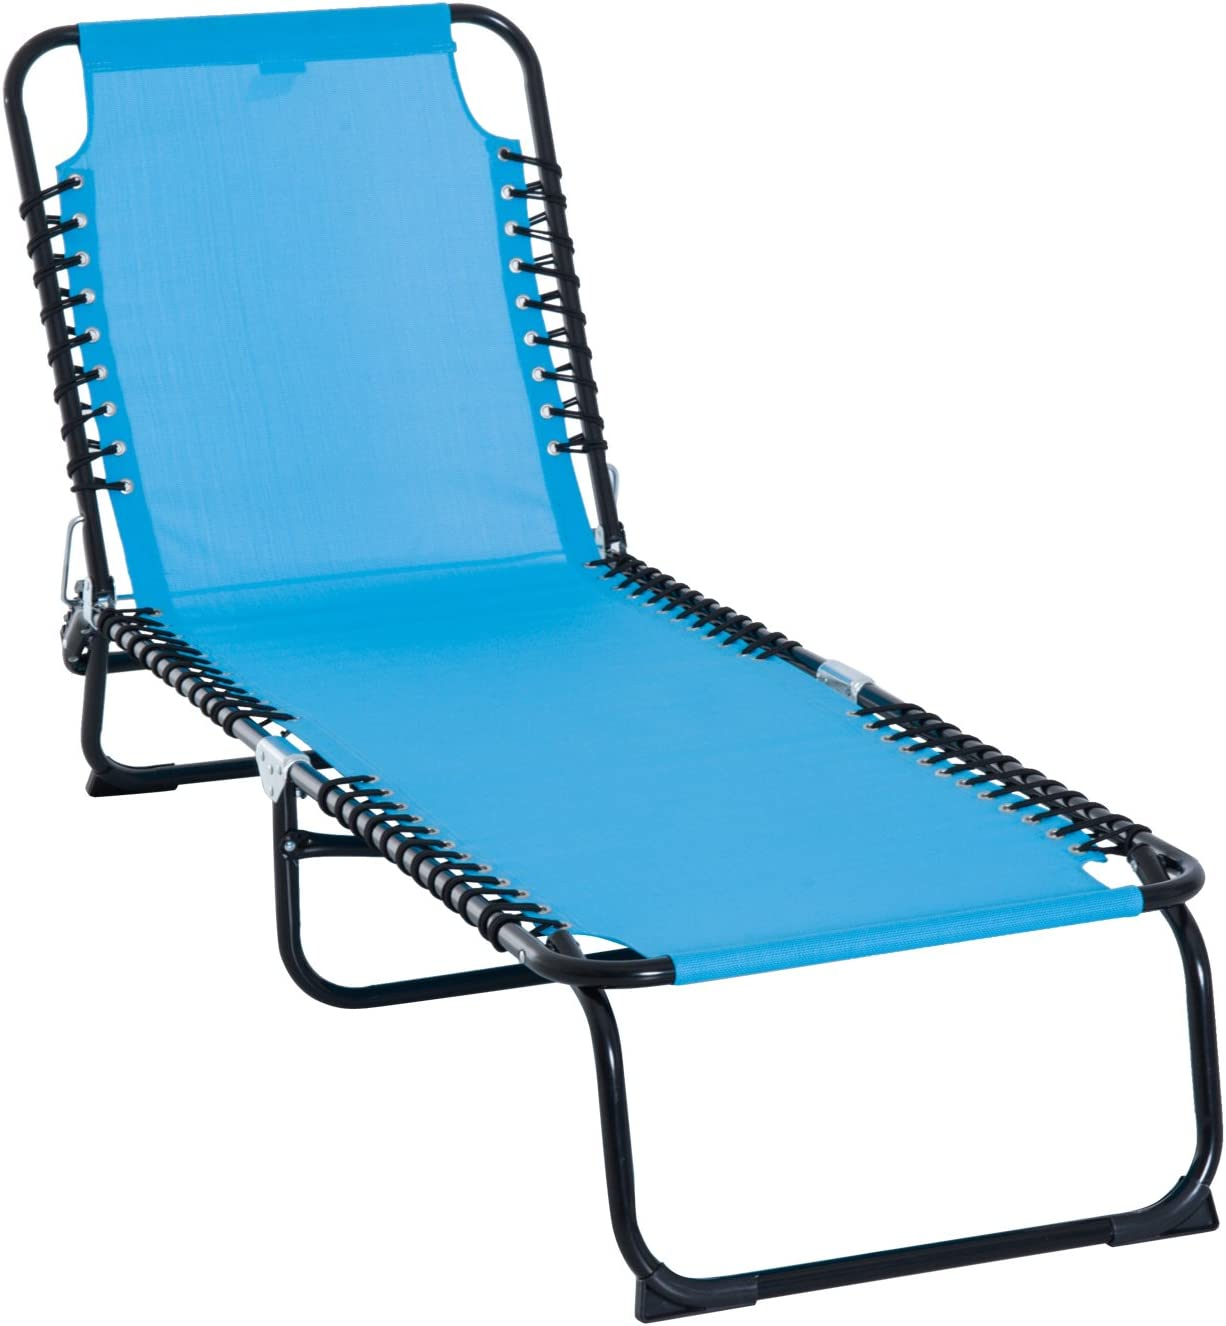 Amazon.com: Outsunny 3-Position Reclining Beach Chair